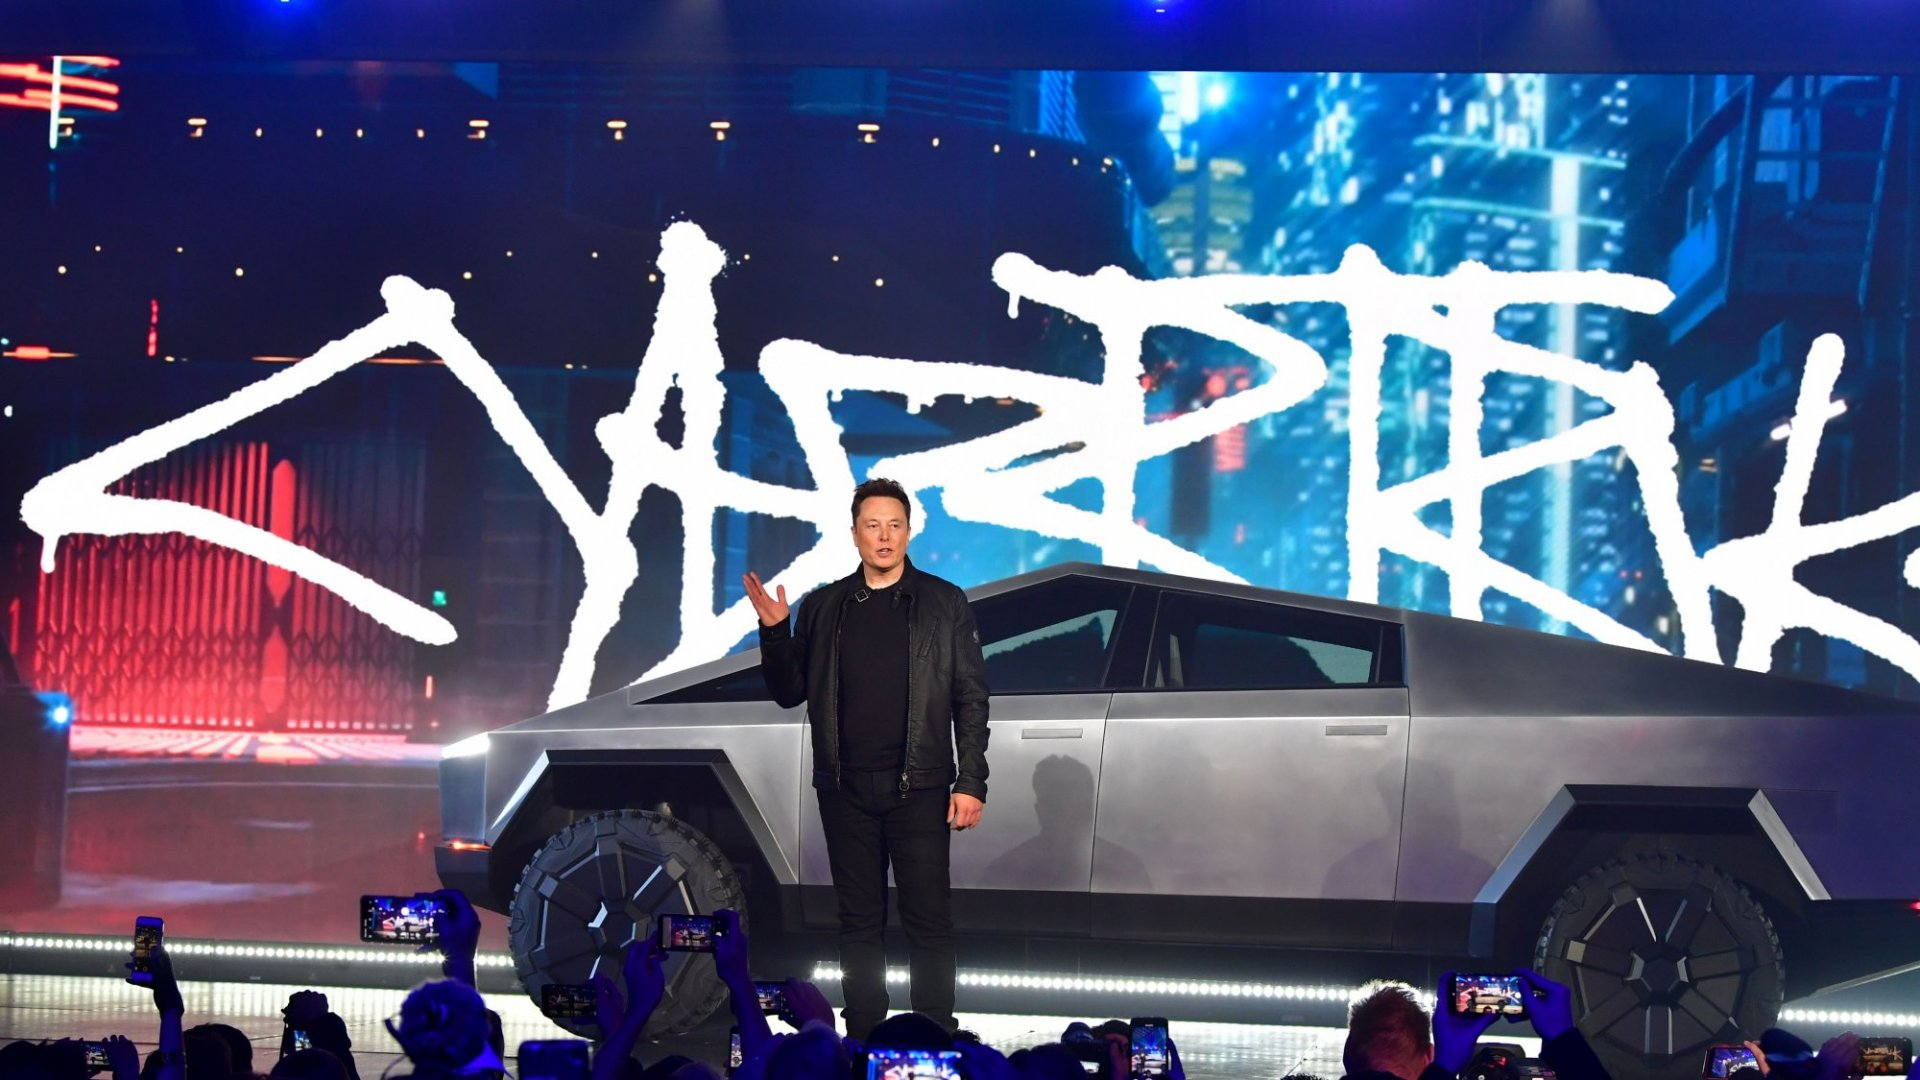 Ford Has Responded to Tesla's Cybertruck. And It Doesn't Seem Impressed